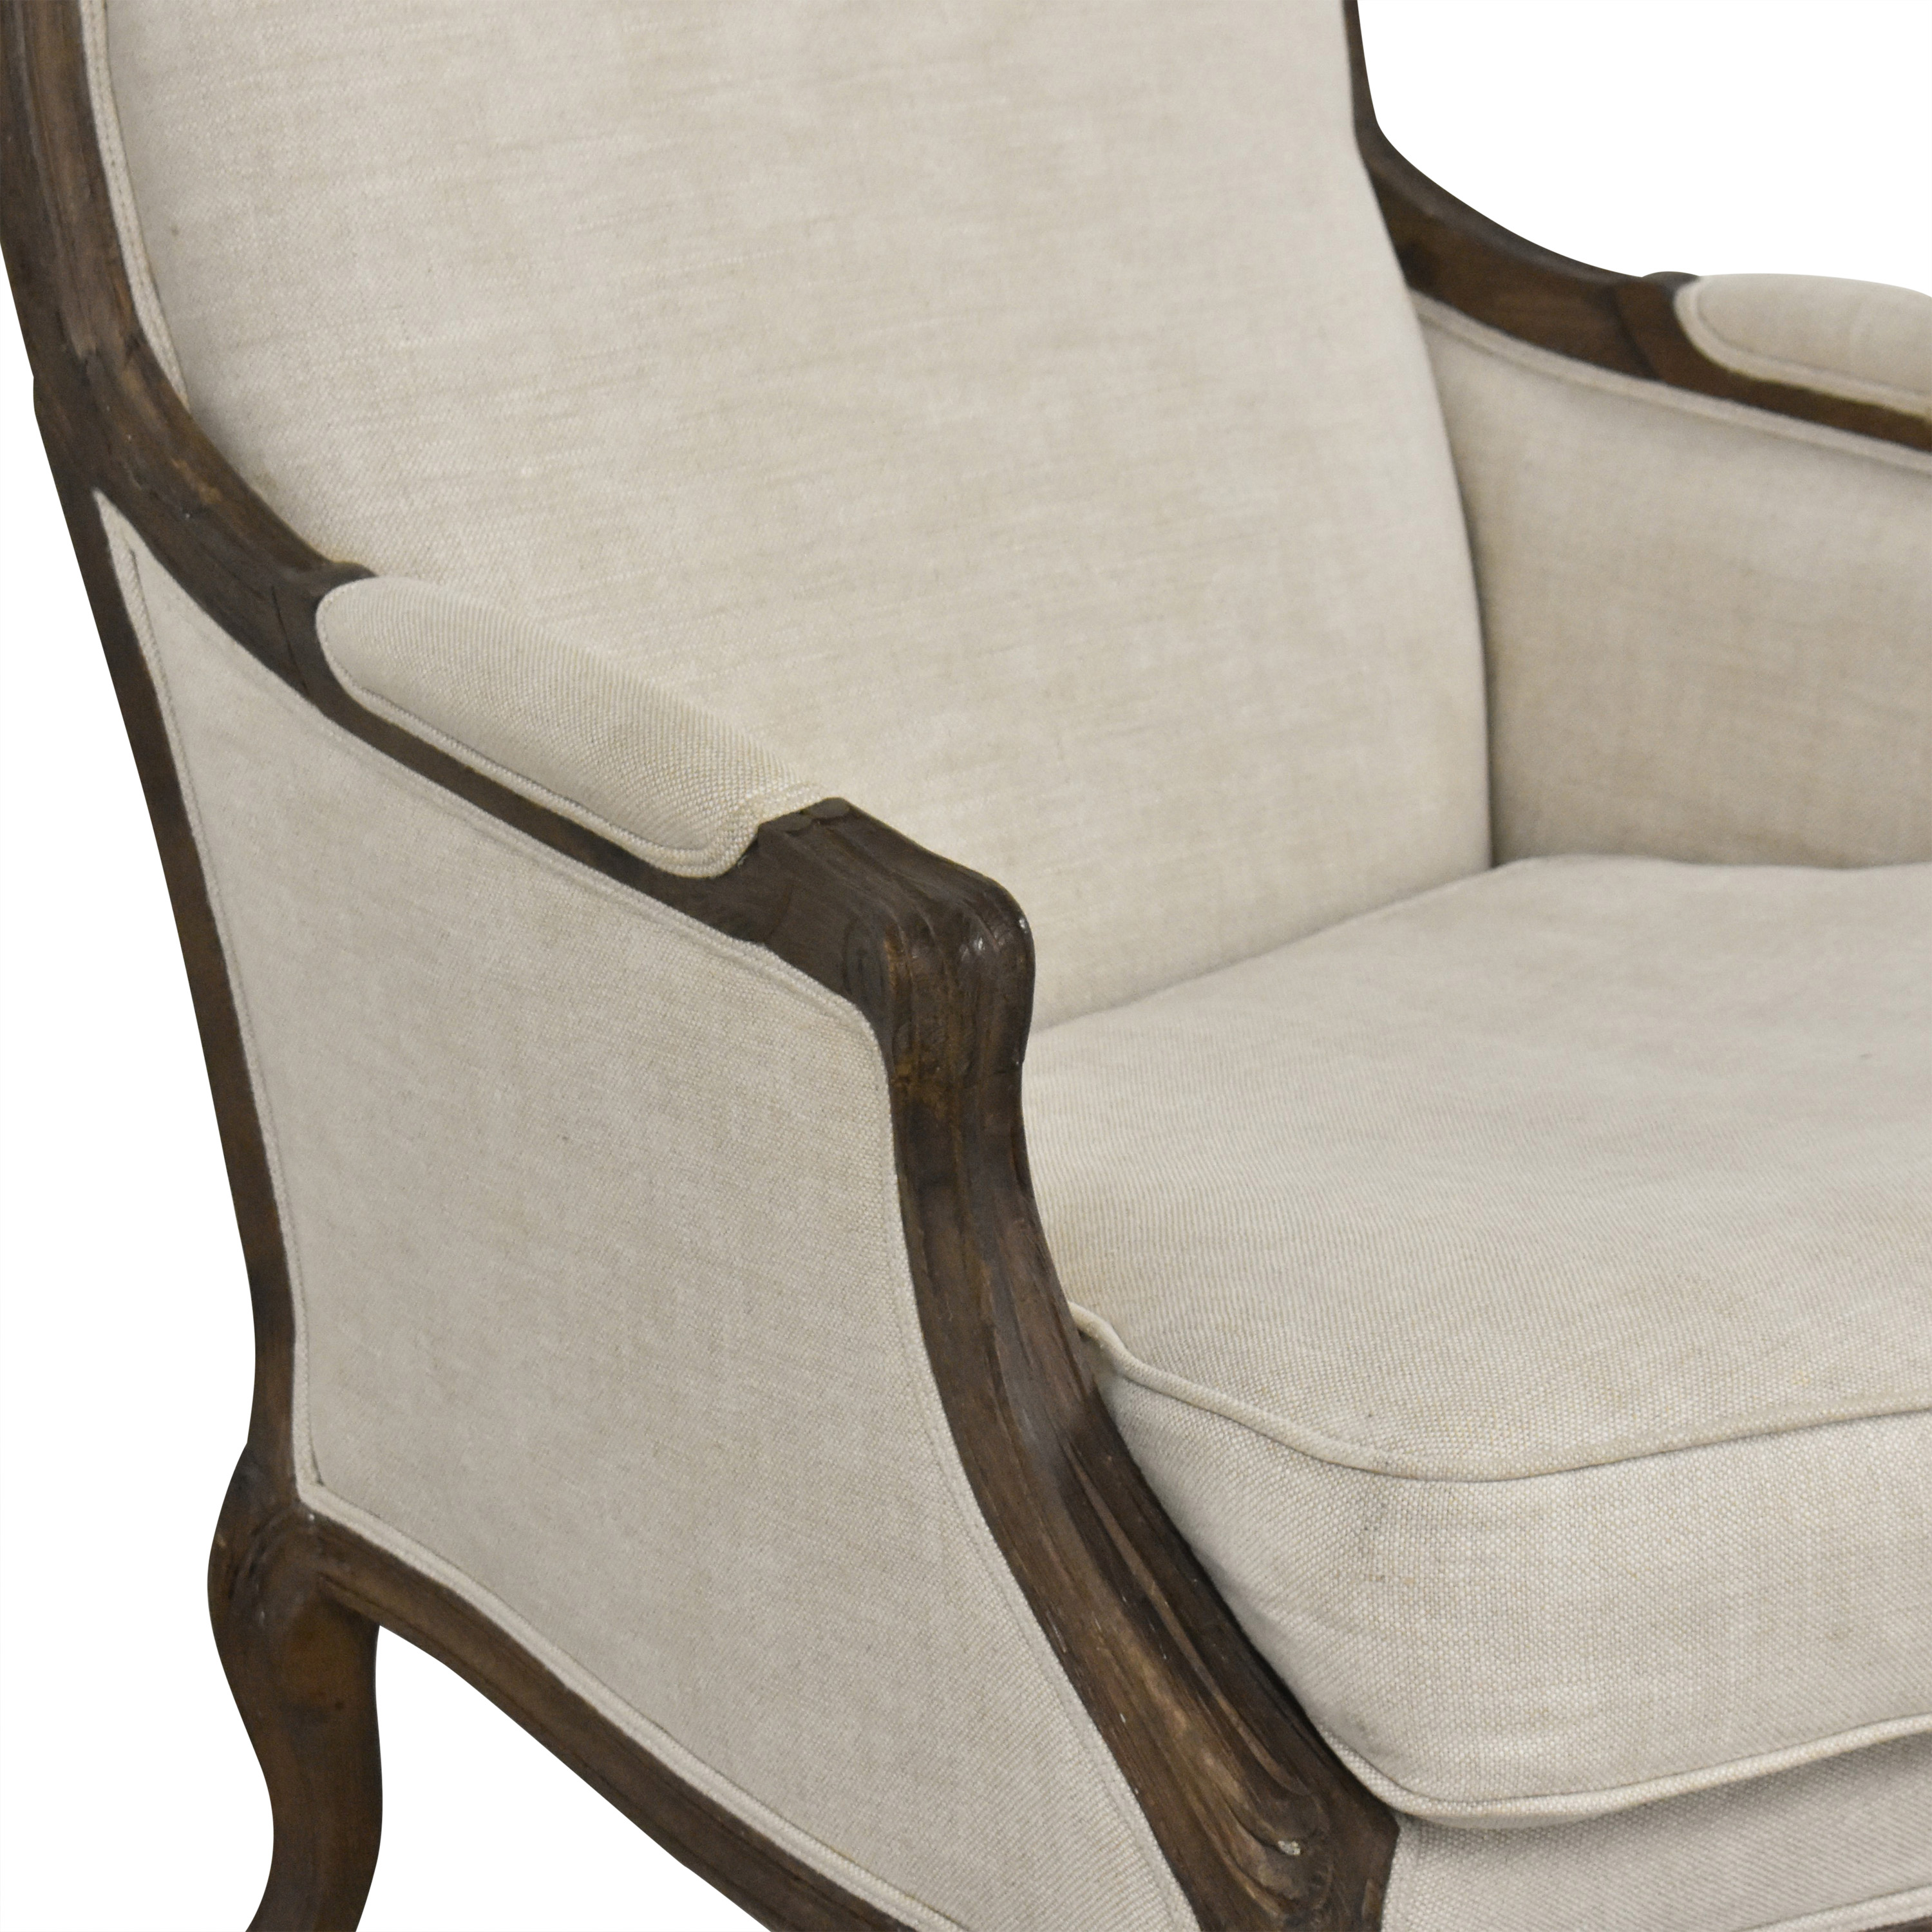 Restoration Hardware Restoration Hardware Lounge Chair second hand